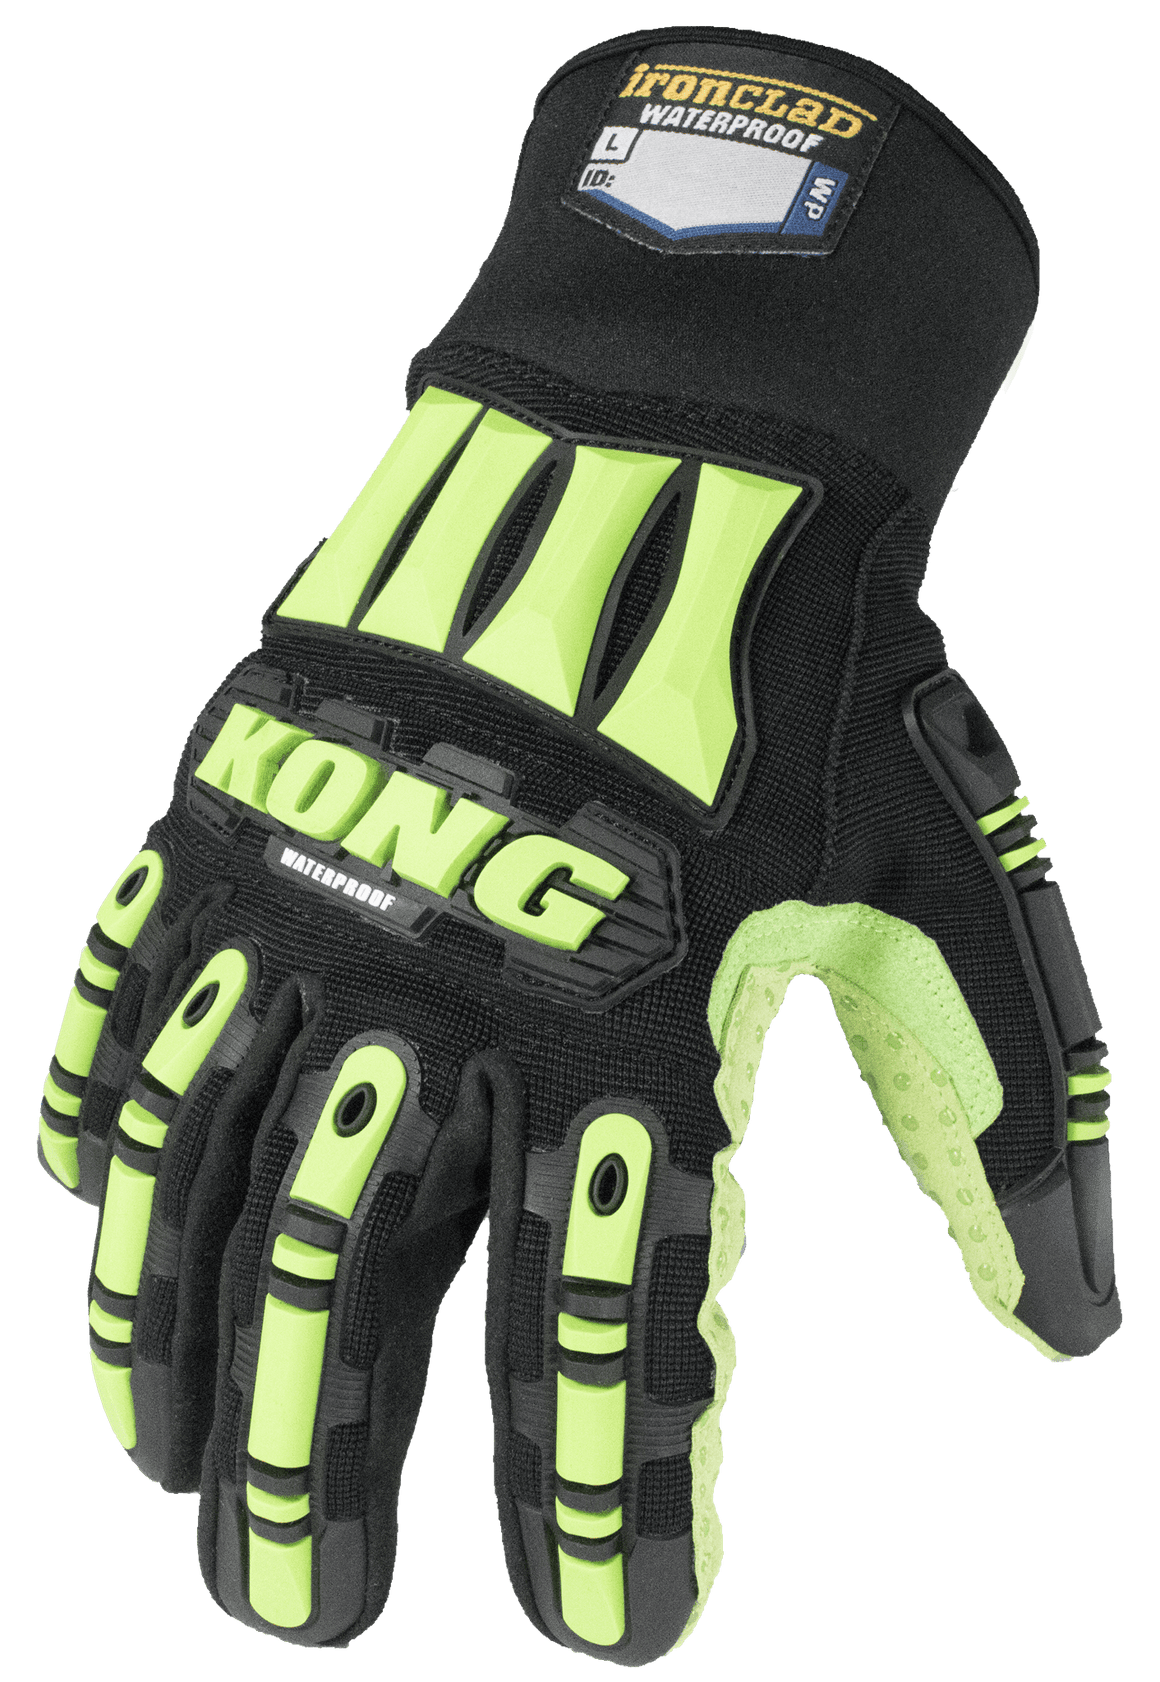 IRONCLAD SDX2W - KONG WATERPROOF GLOVE